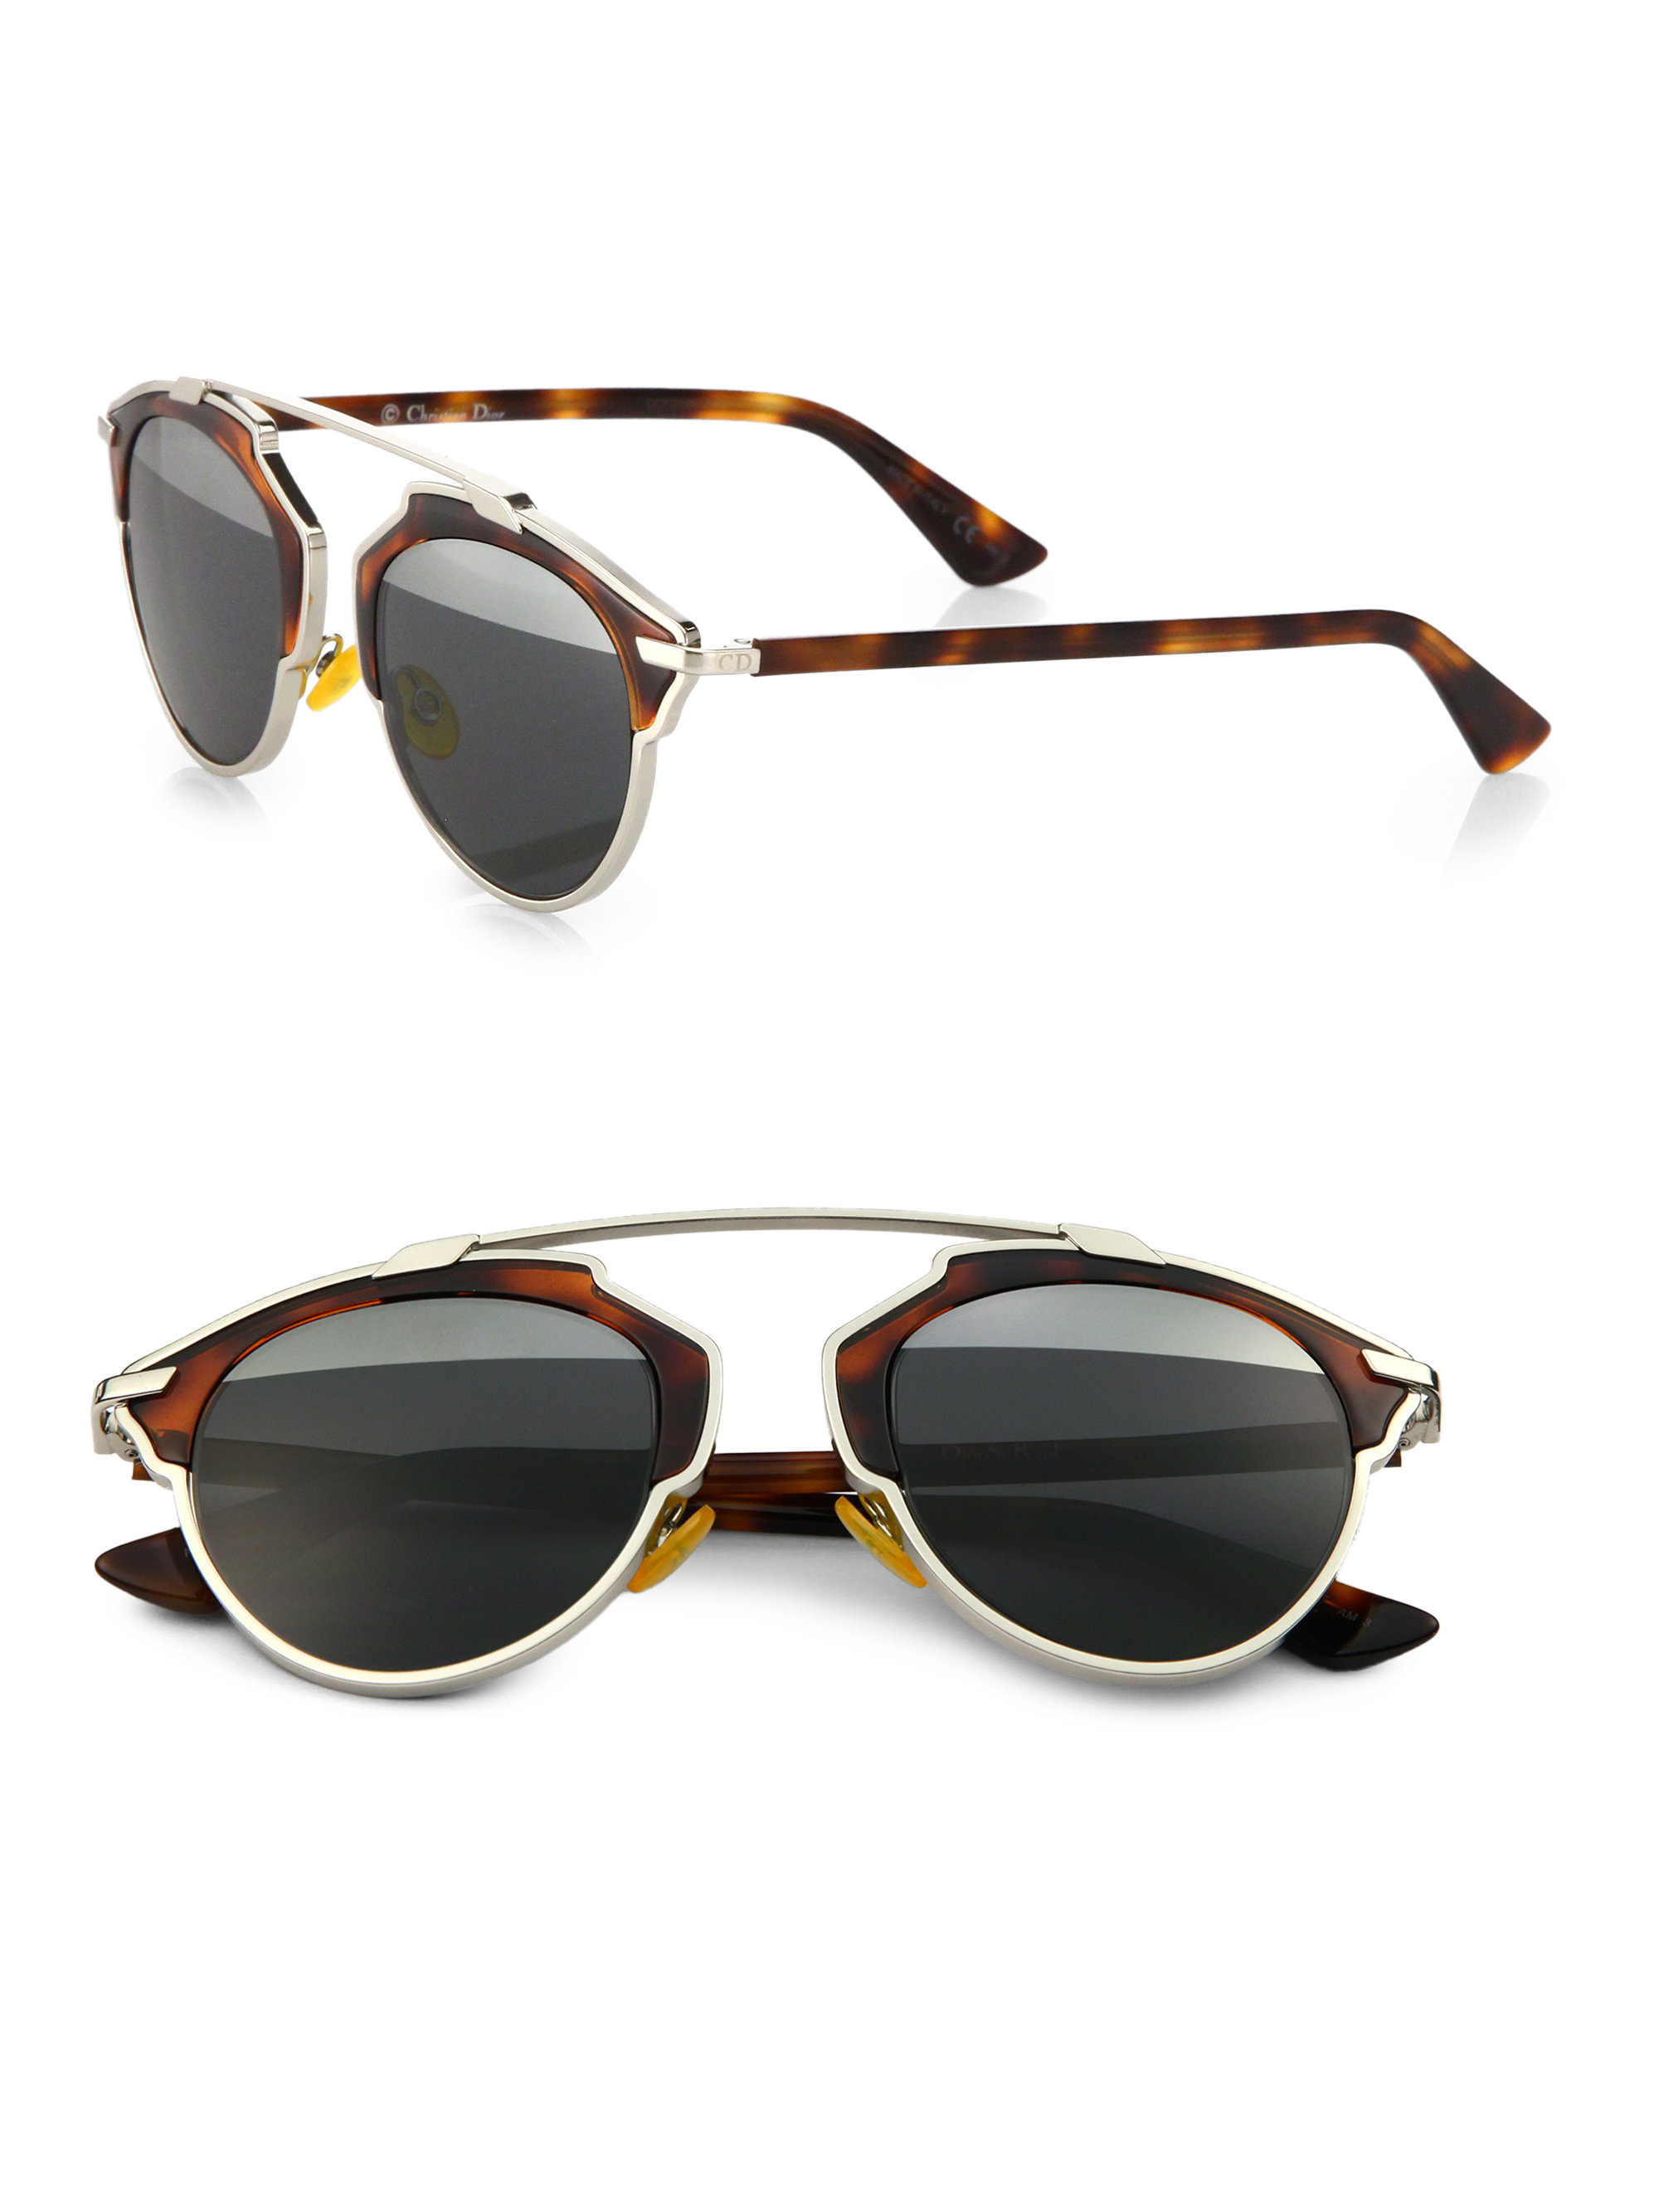 Dior Women S So Real Sunglasses In Brown Save 5 Lyst